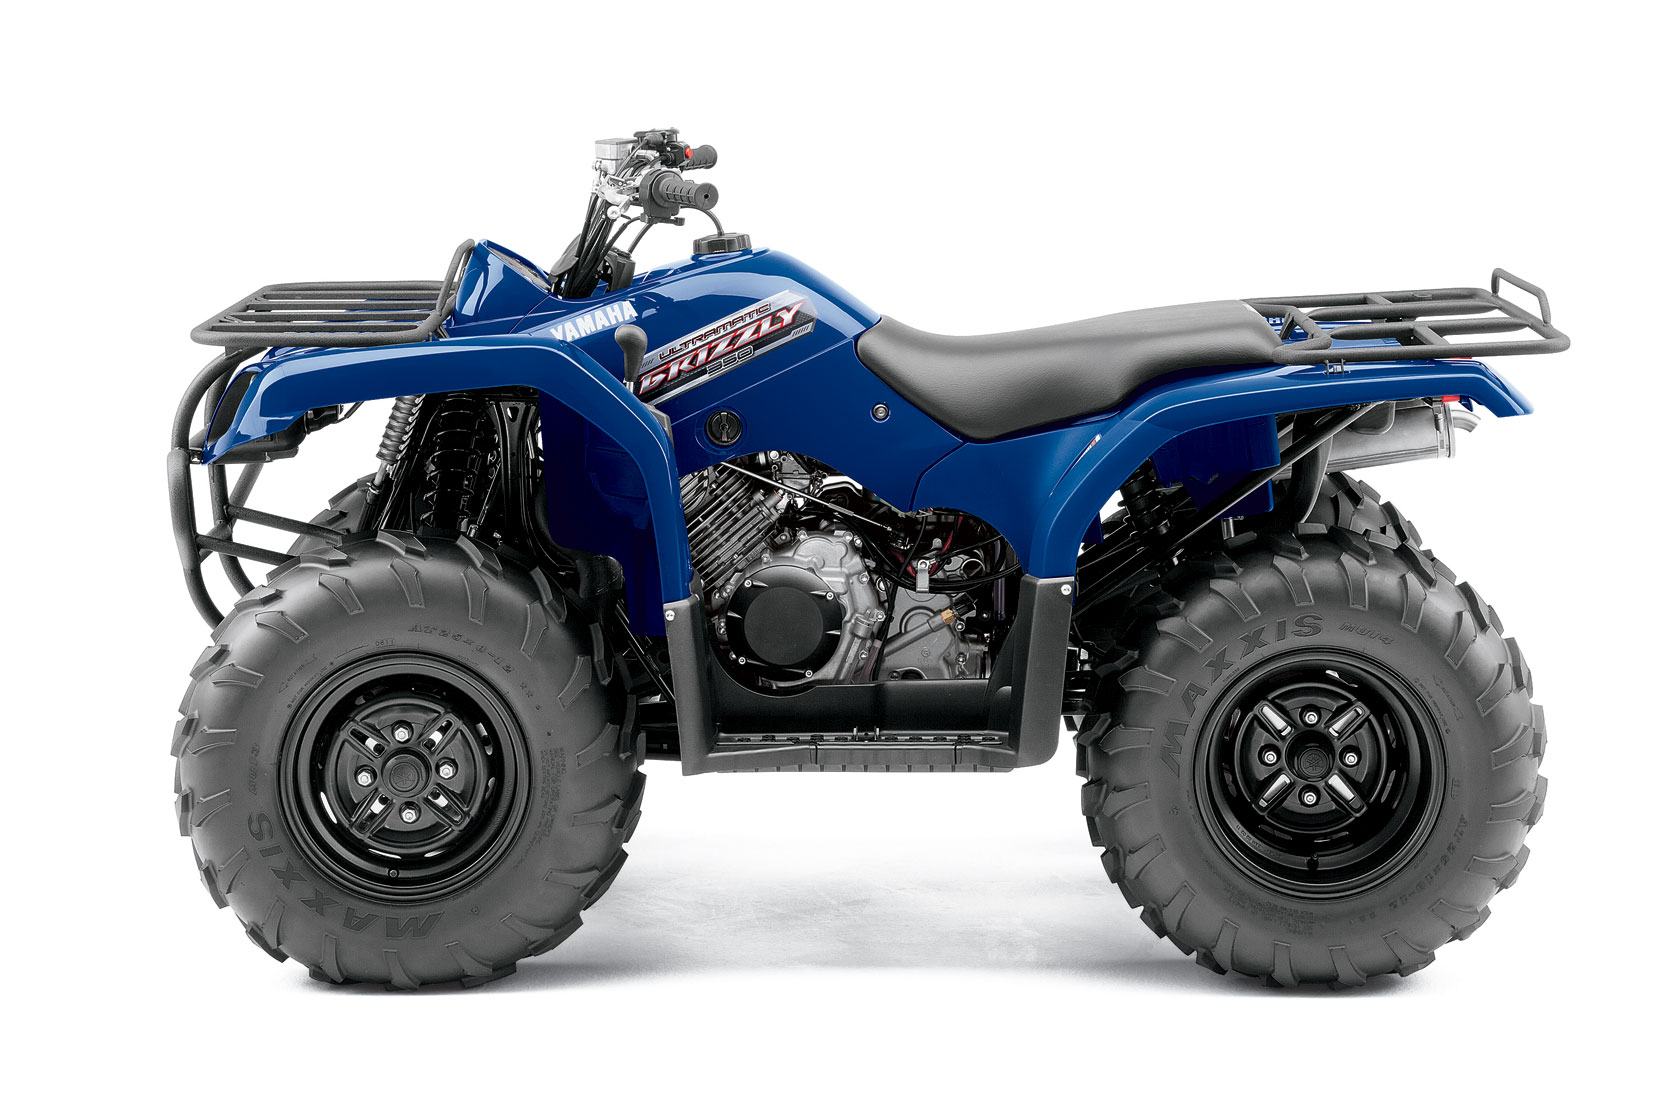 2012 Yamaha Grizzly 350 Auto 4x4 Review